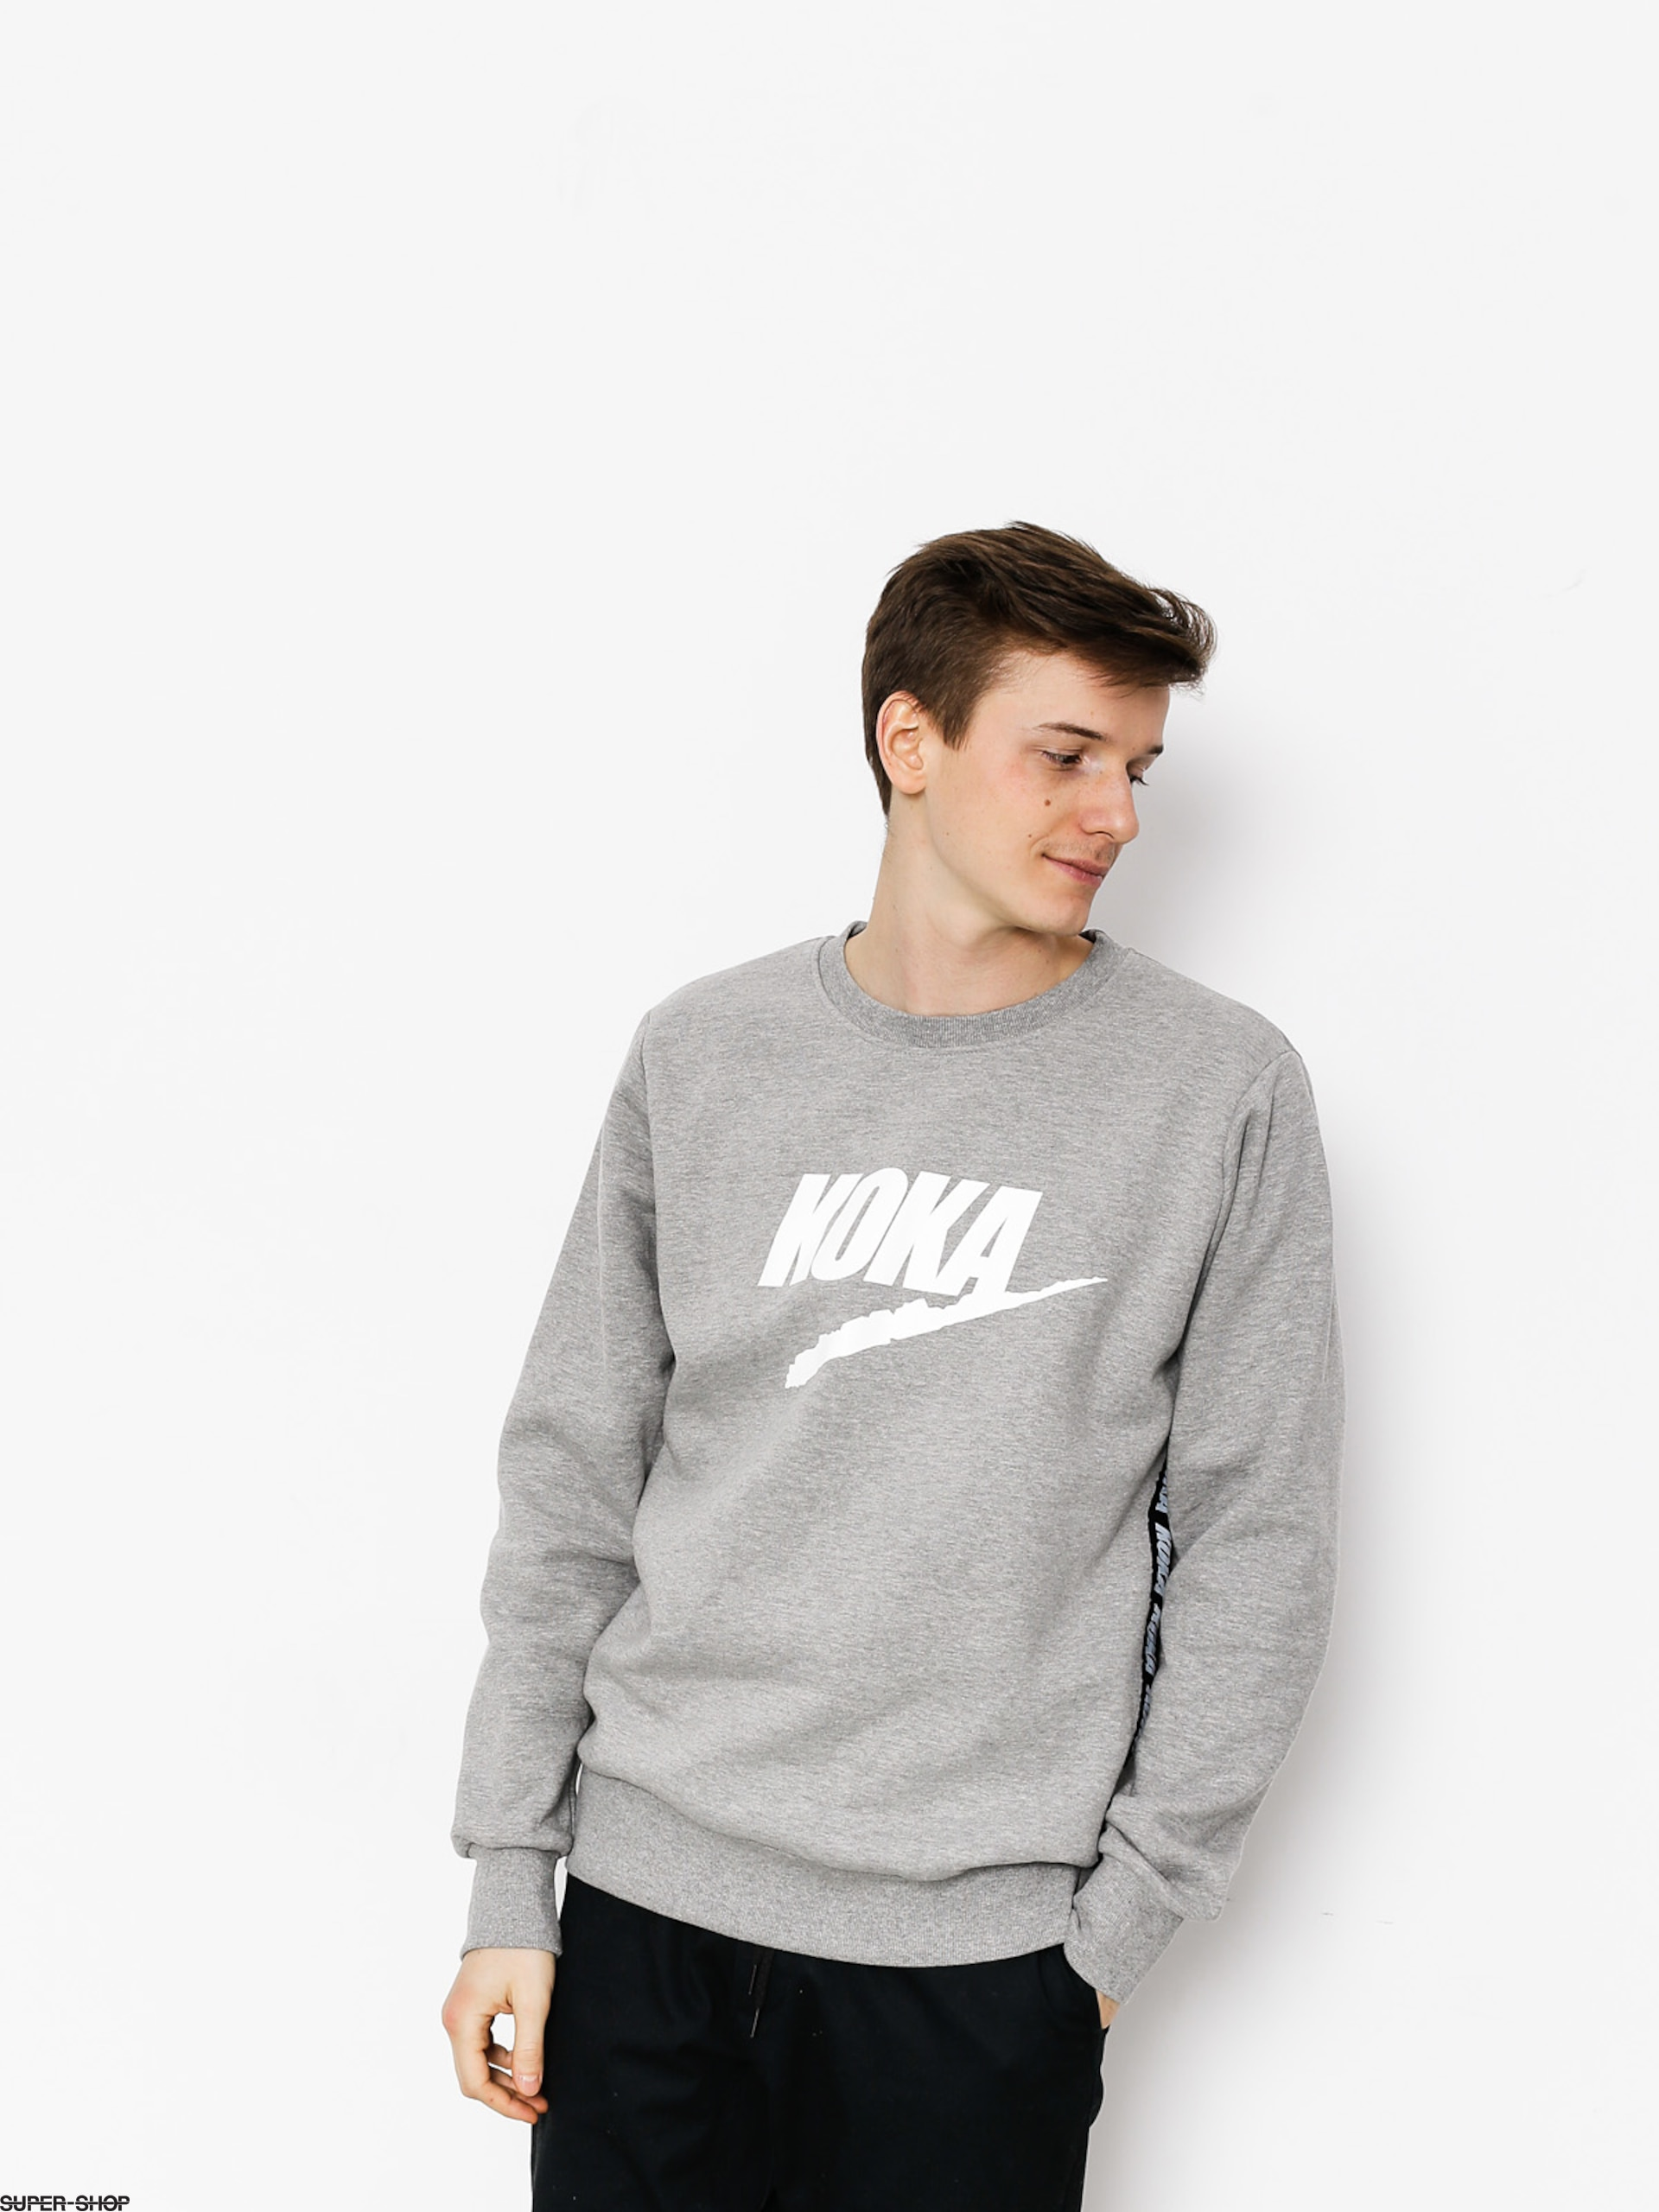 Koka Sweatshirt Fake Tape